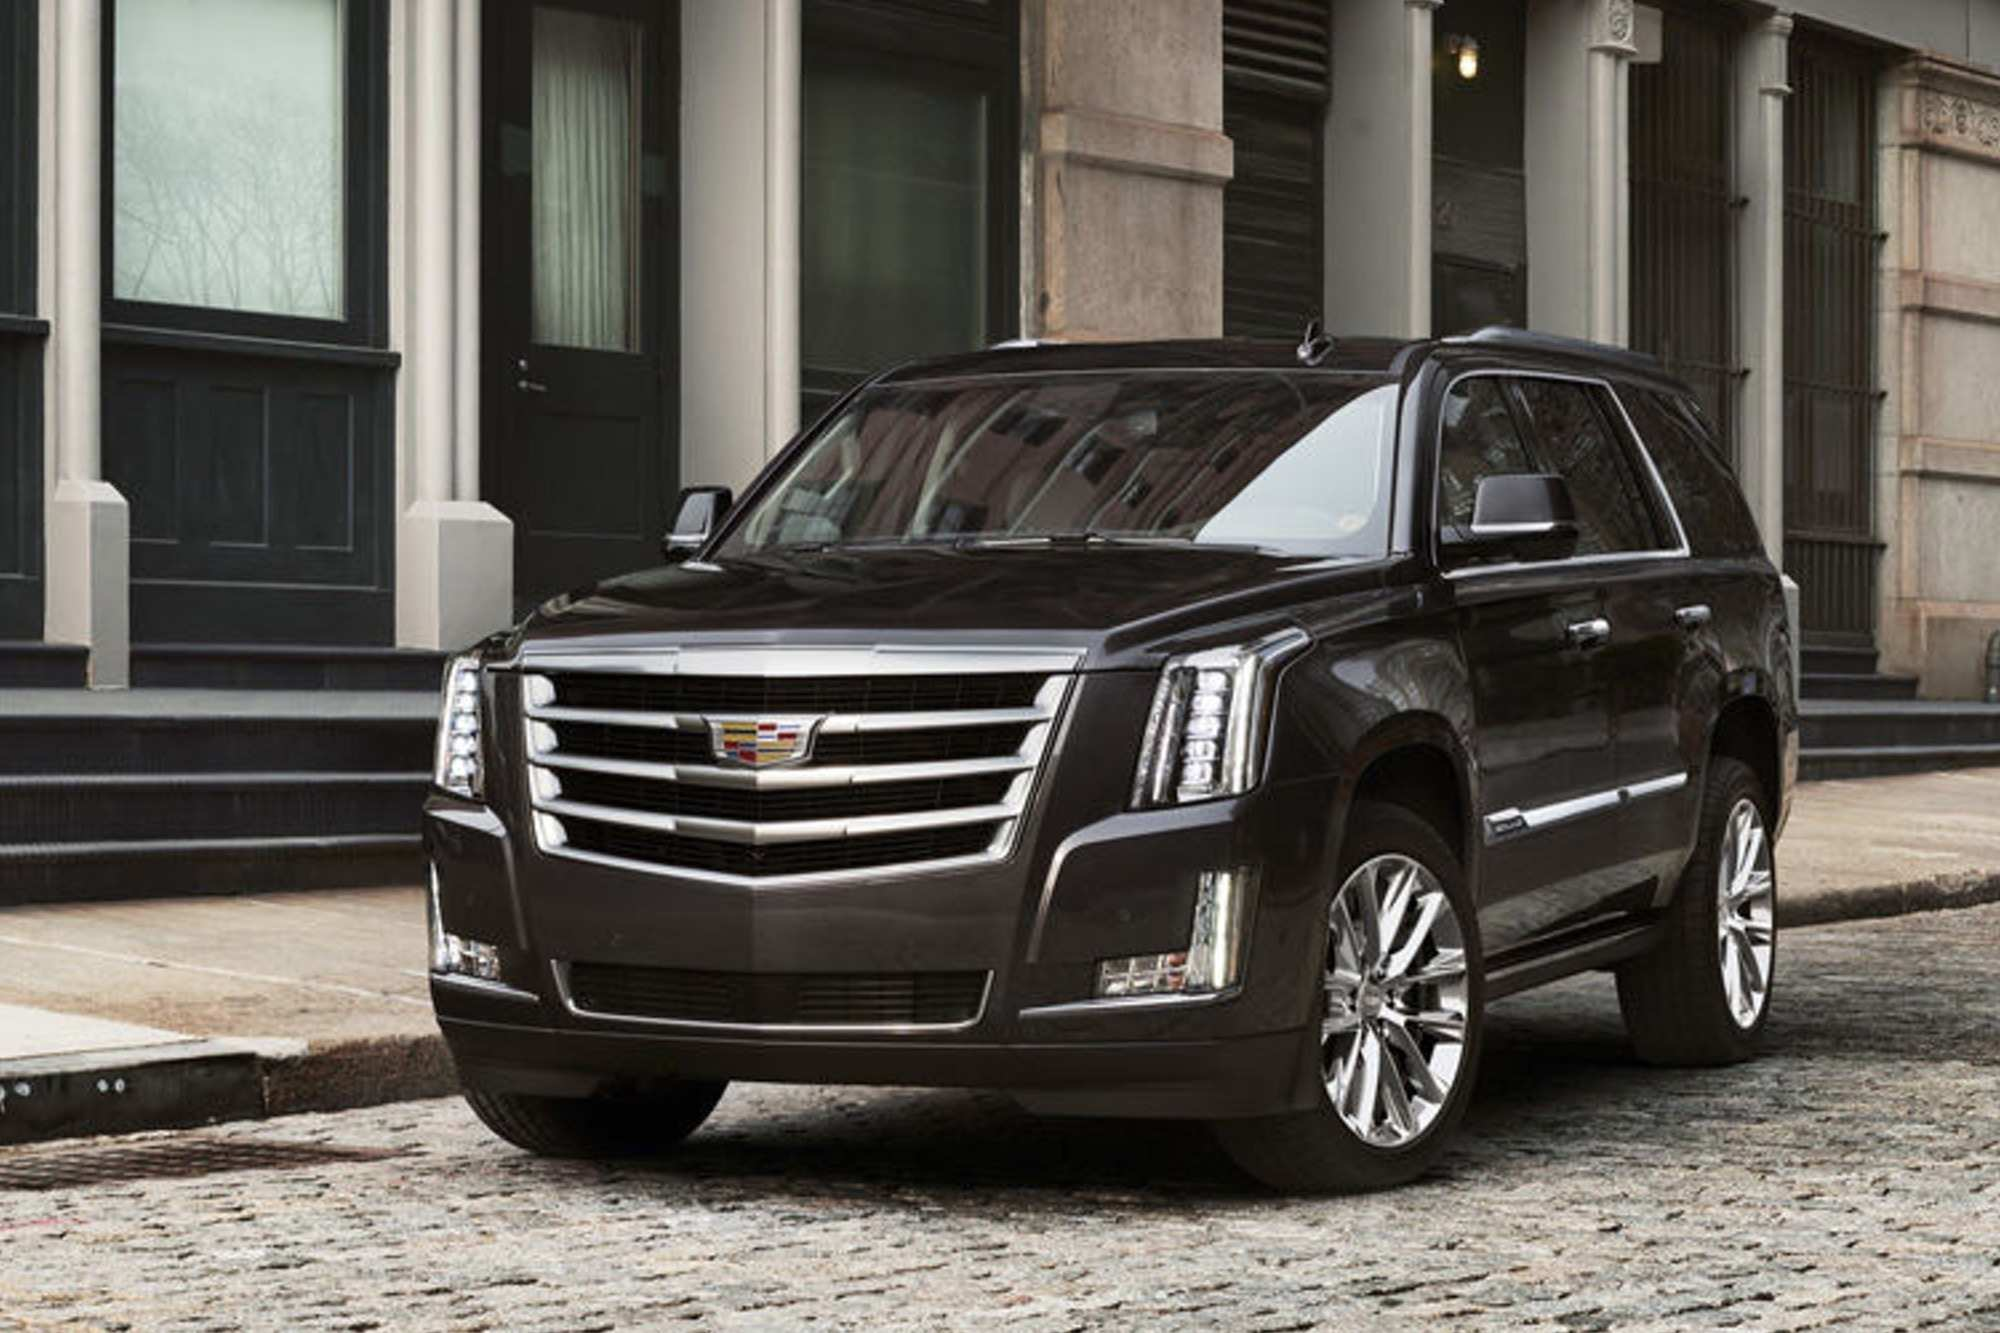 14 All New Pictures Of The 2020 Cadillac Escalade Engine